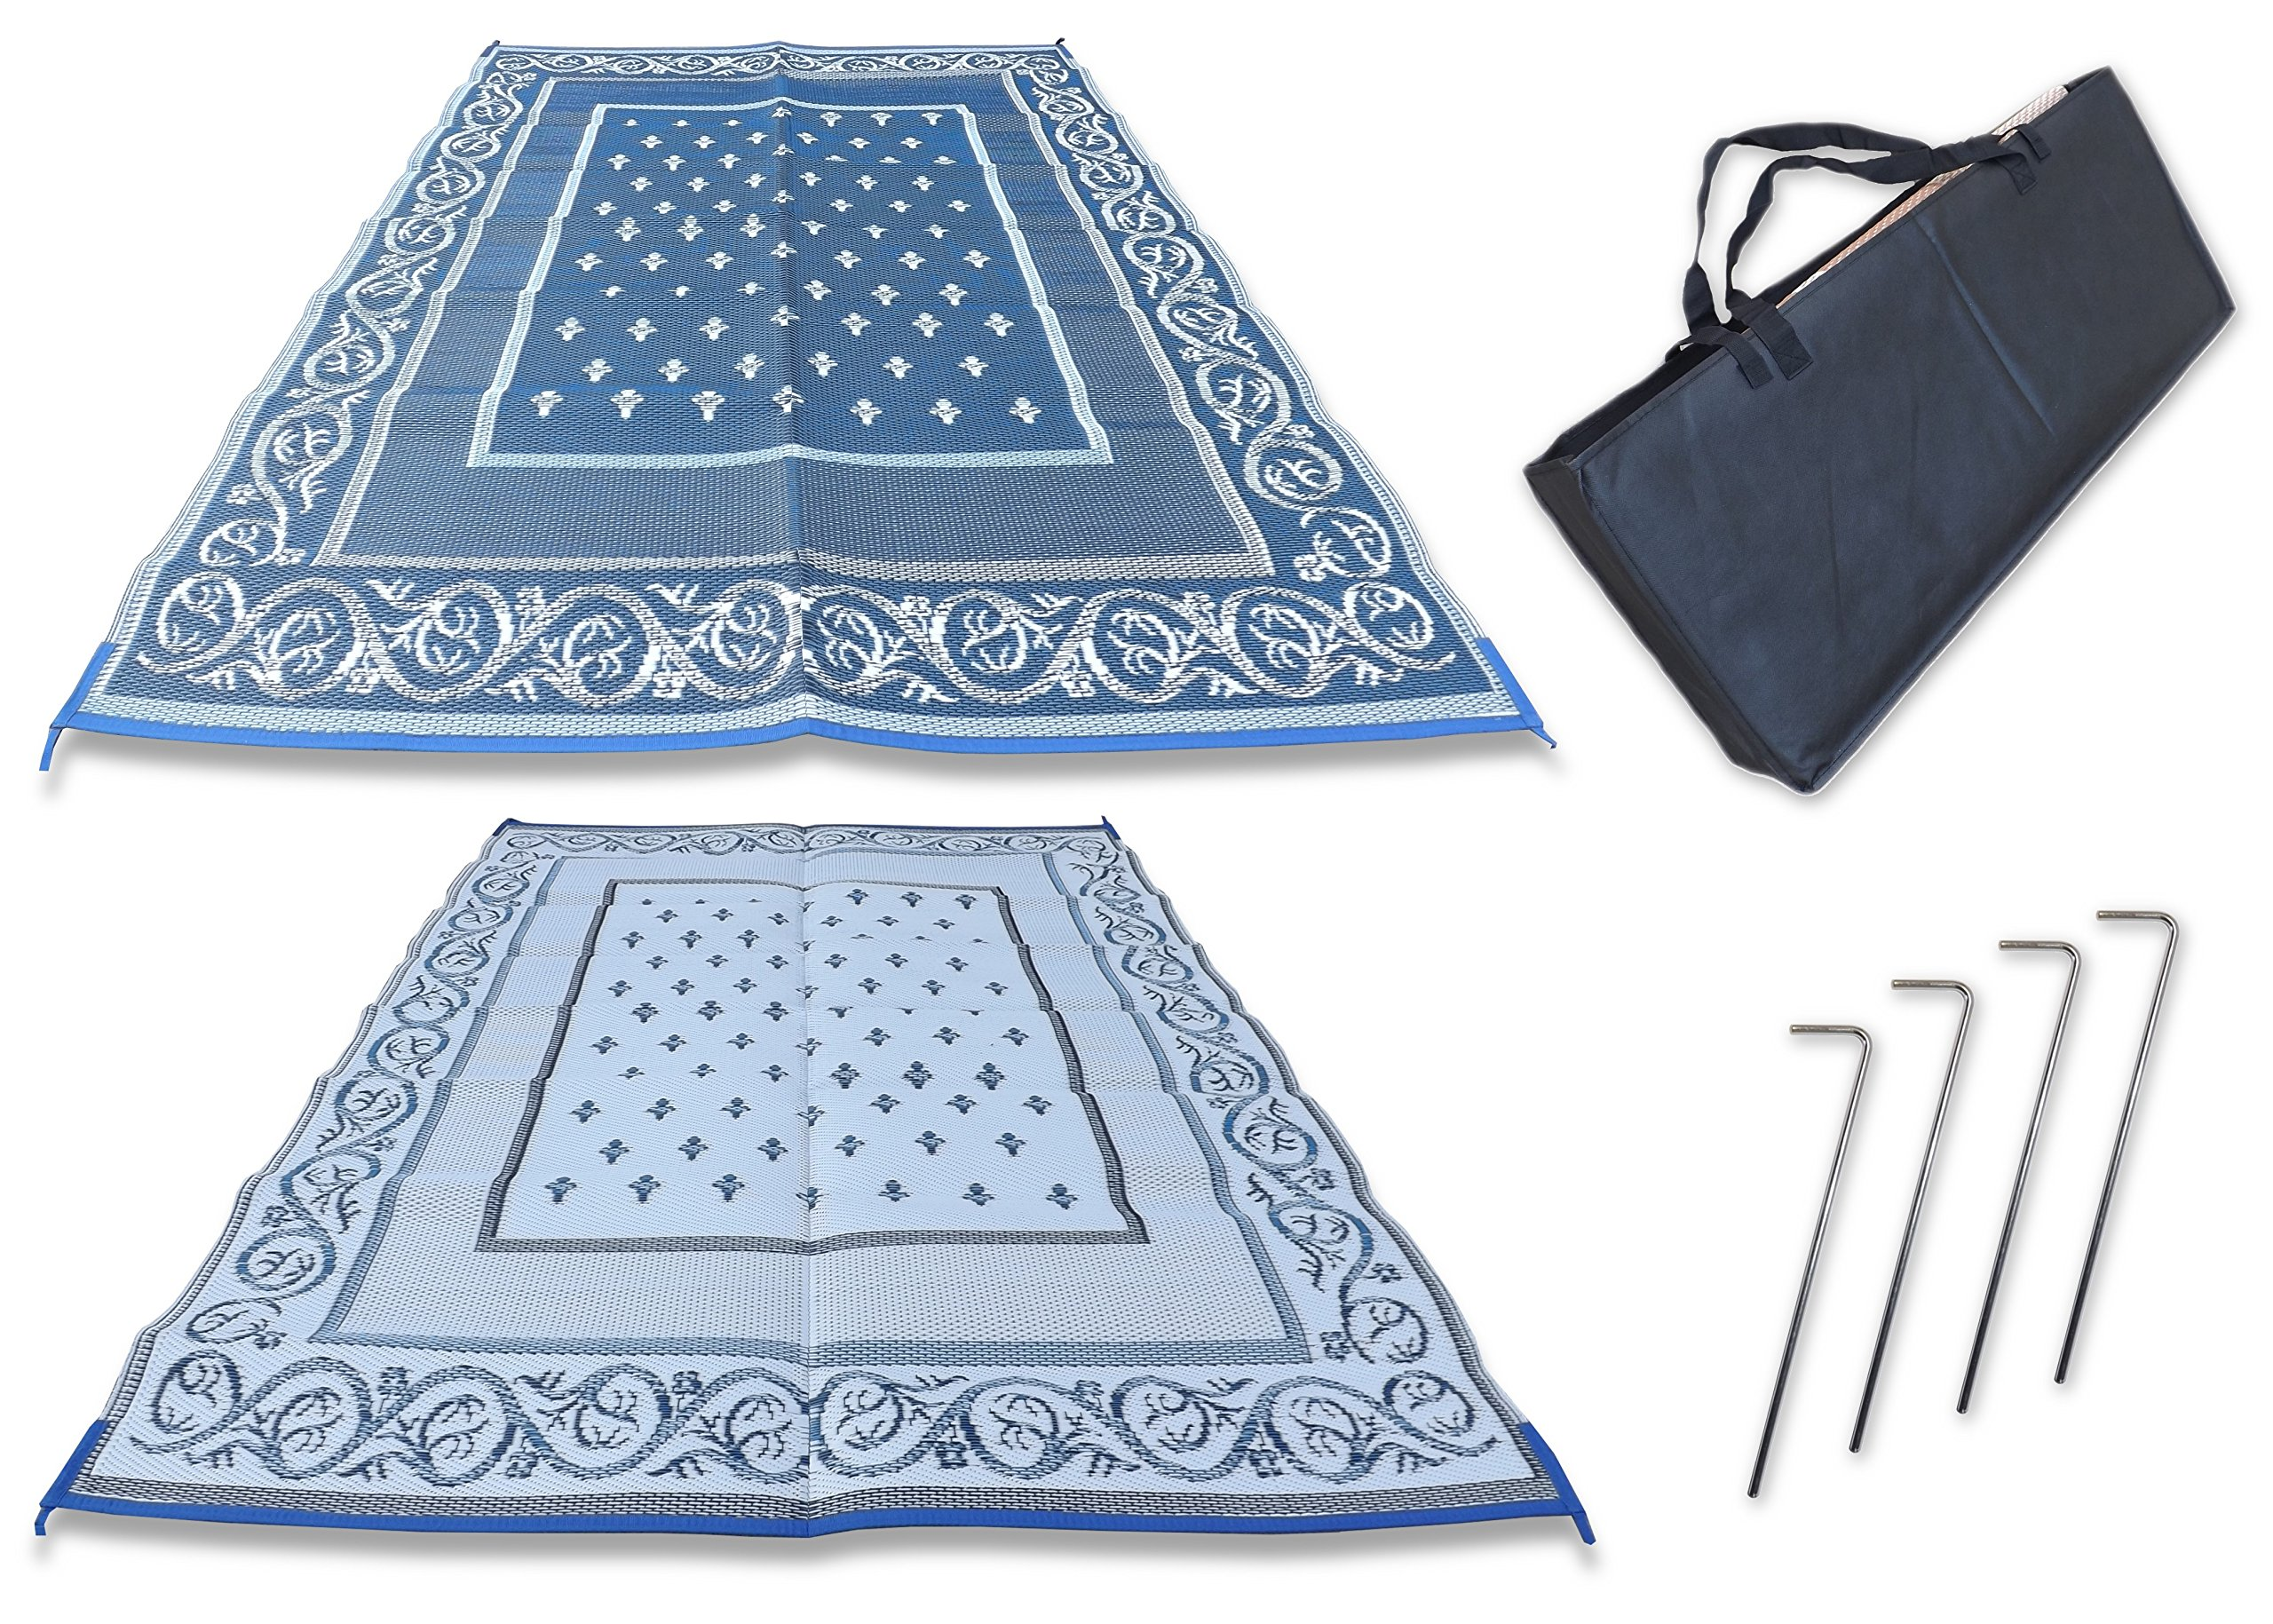 Redwood Mats Patio Mat 9' X 12' Blue Rv Mat Reversible Outdoor Rug Camping Indoor (With Ground Stakes & Carry Bag)